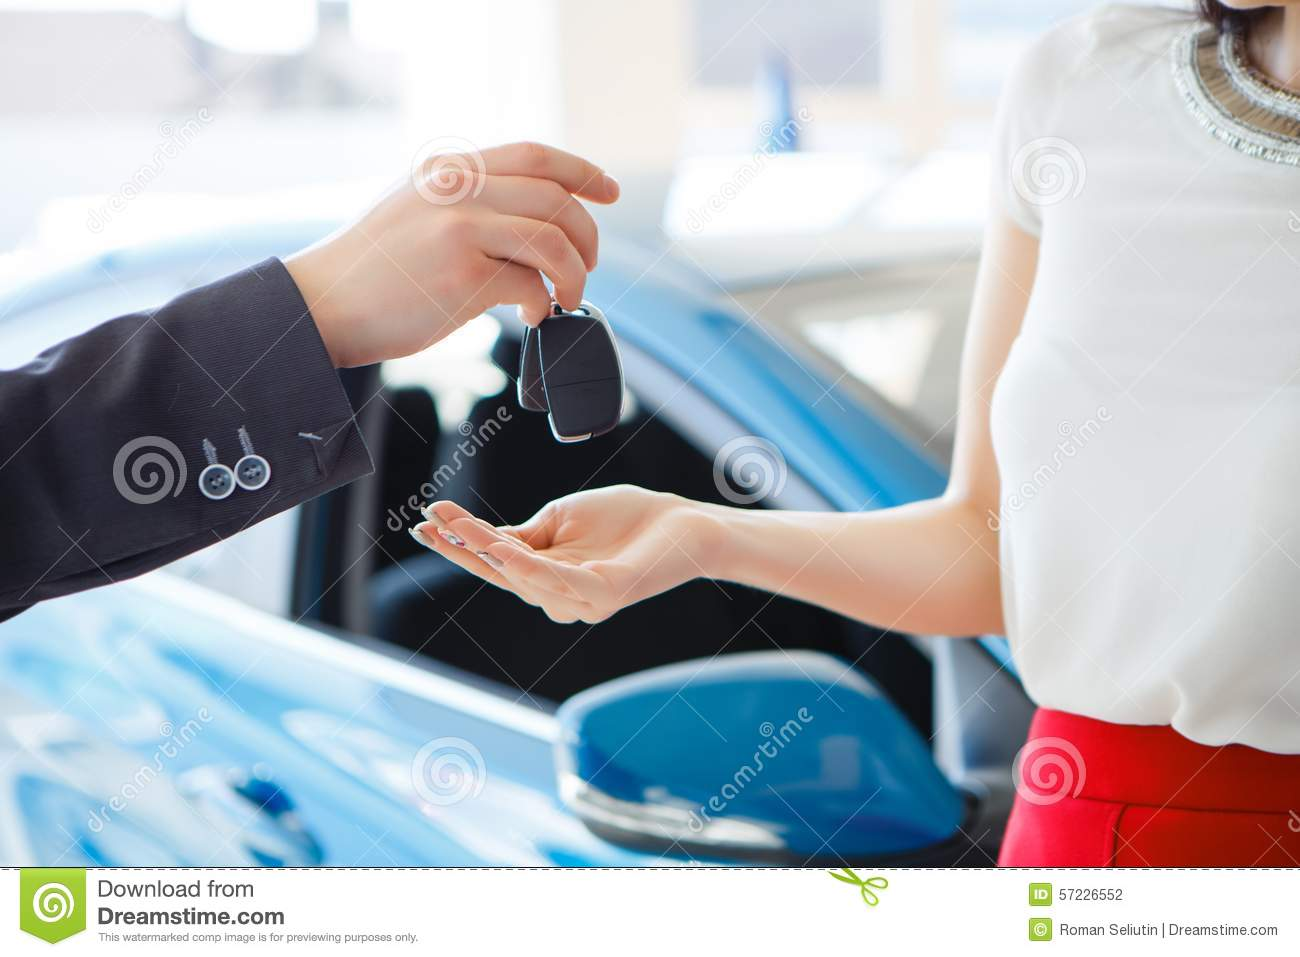 Expensive Car For Sale Or Gift Royalty Free Stock Image: Woman Buying A Car Stock Photo